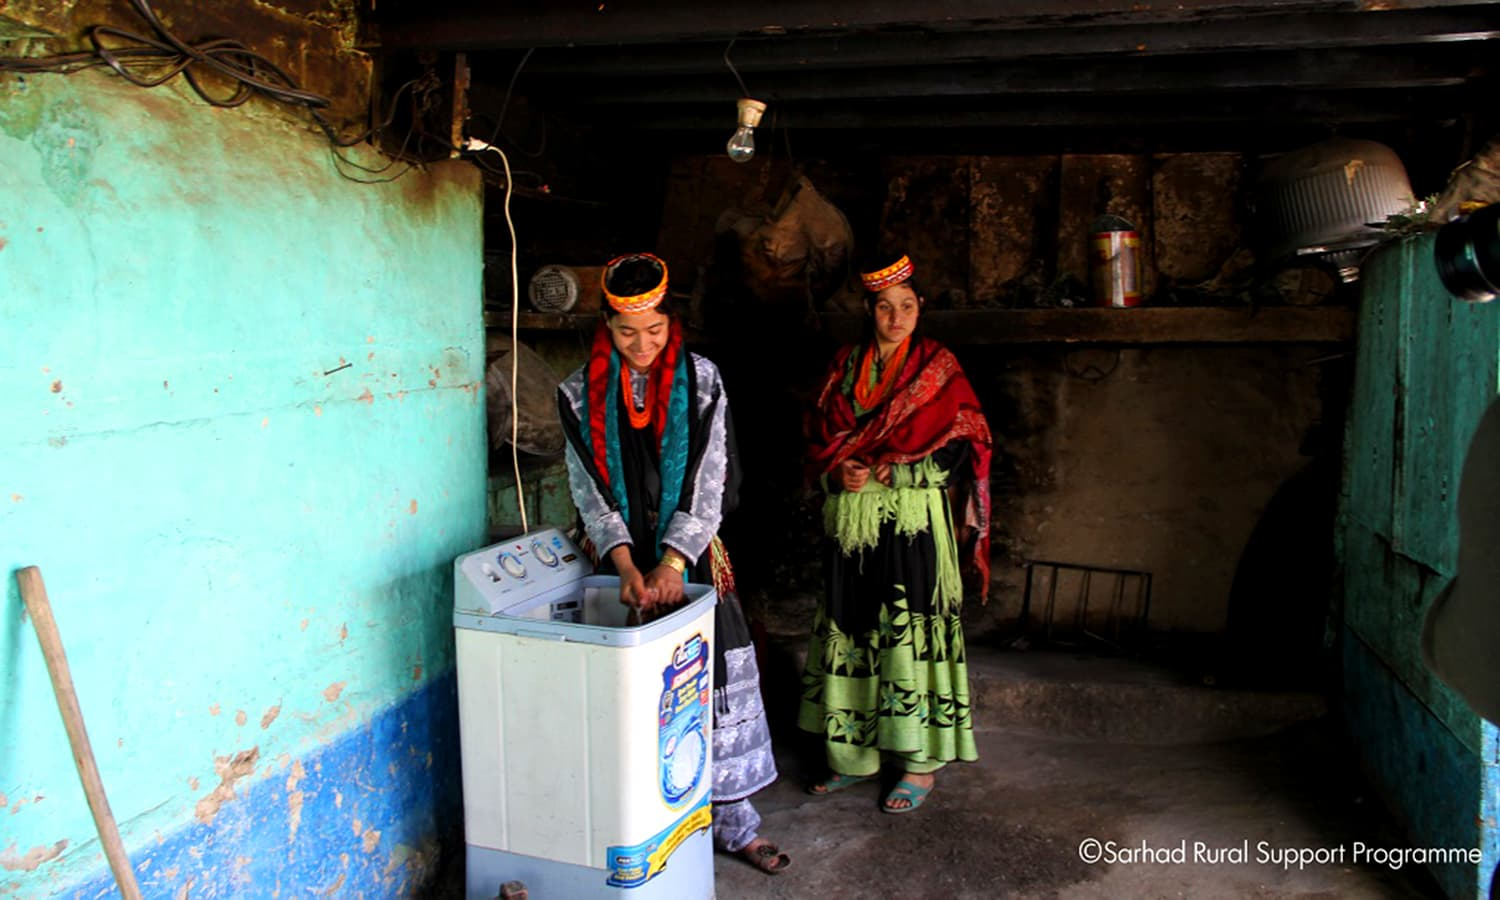 Micro hydropower plants have made the use of washing machines possible. ─ Photo by Sarhad Rural Support Programme